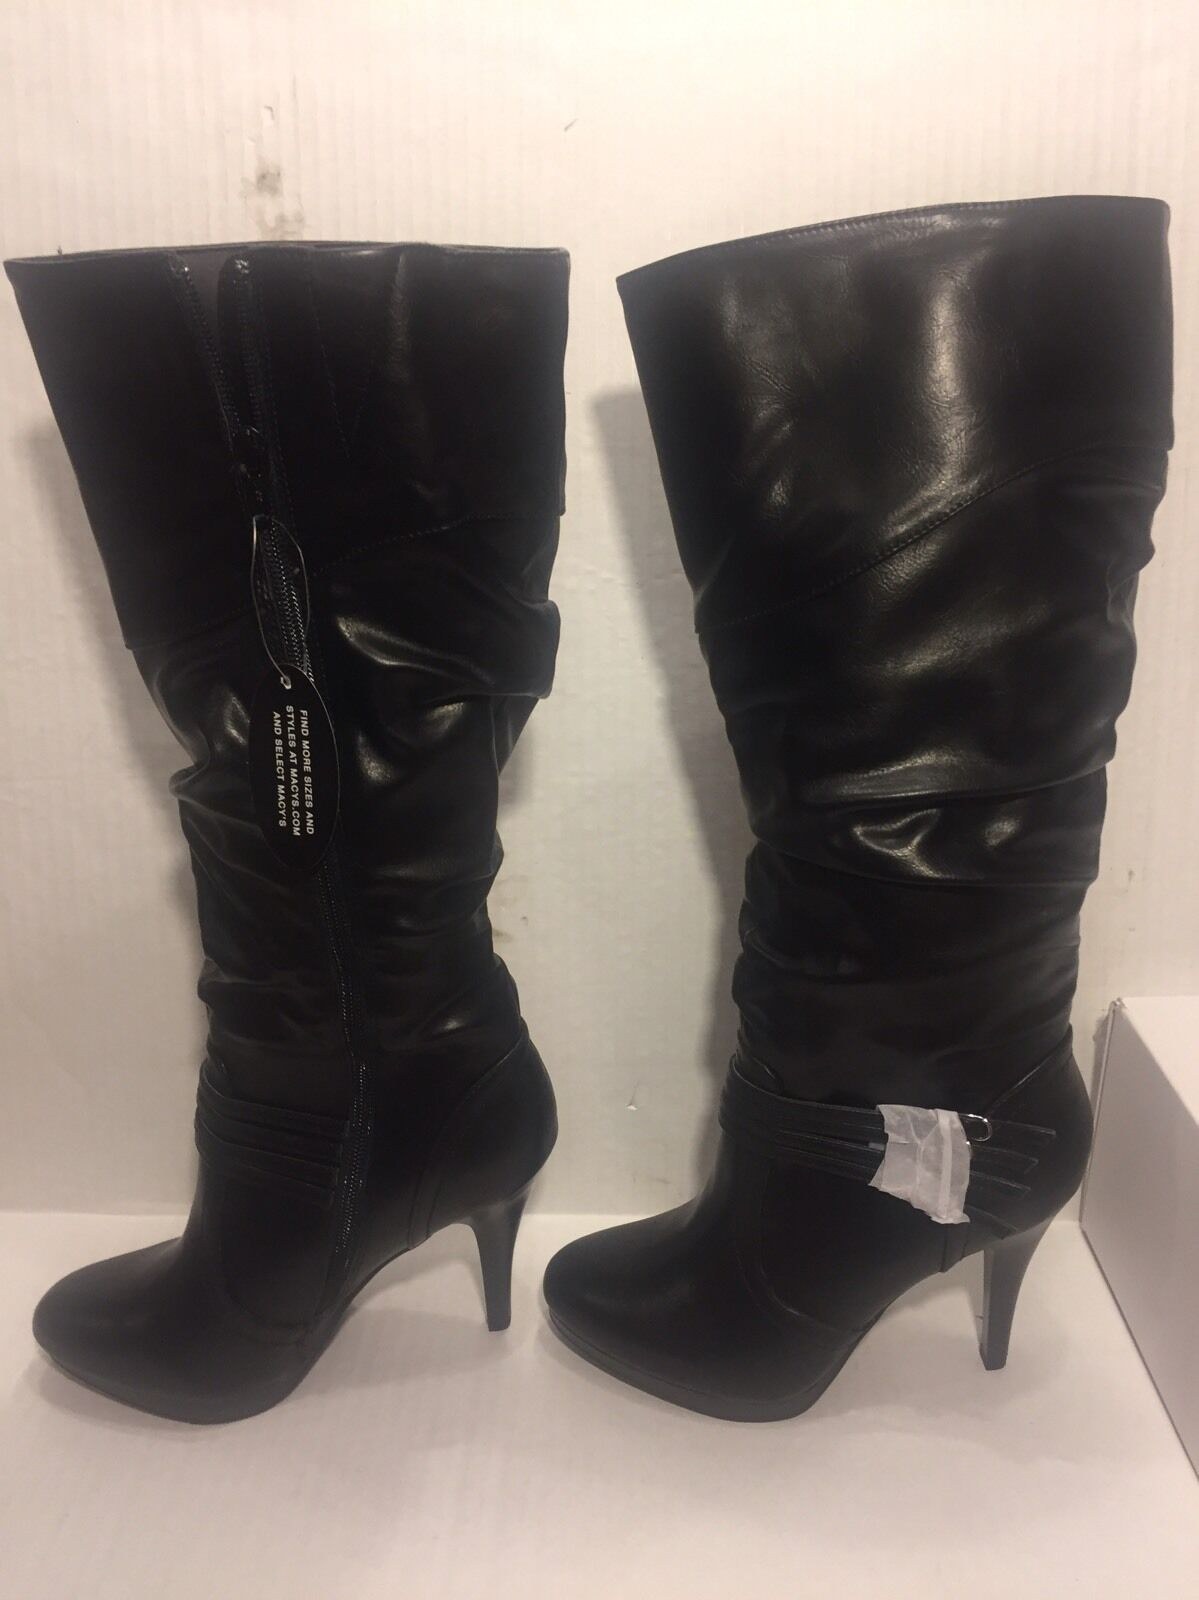 Brand-New Style & Co Lindus Boots 7-1/2 M WC, WC, M Heels, Black, Zipper 57d26b